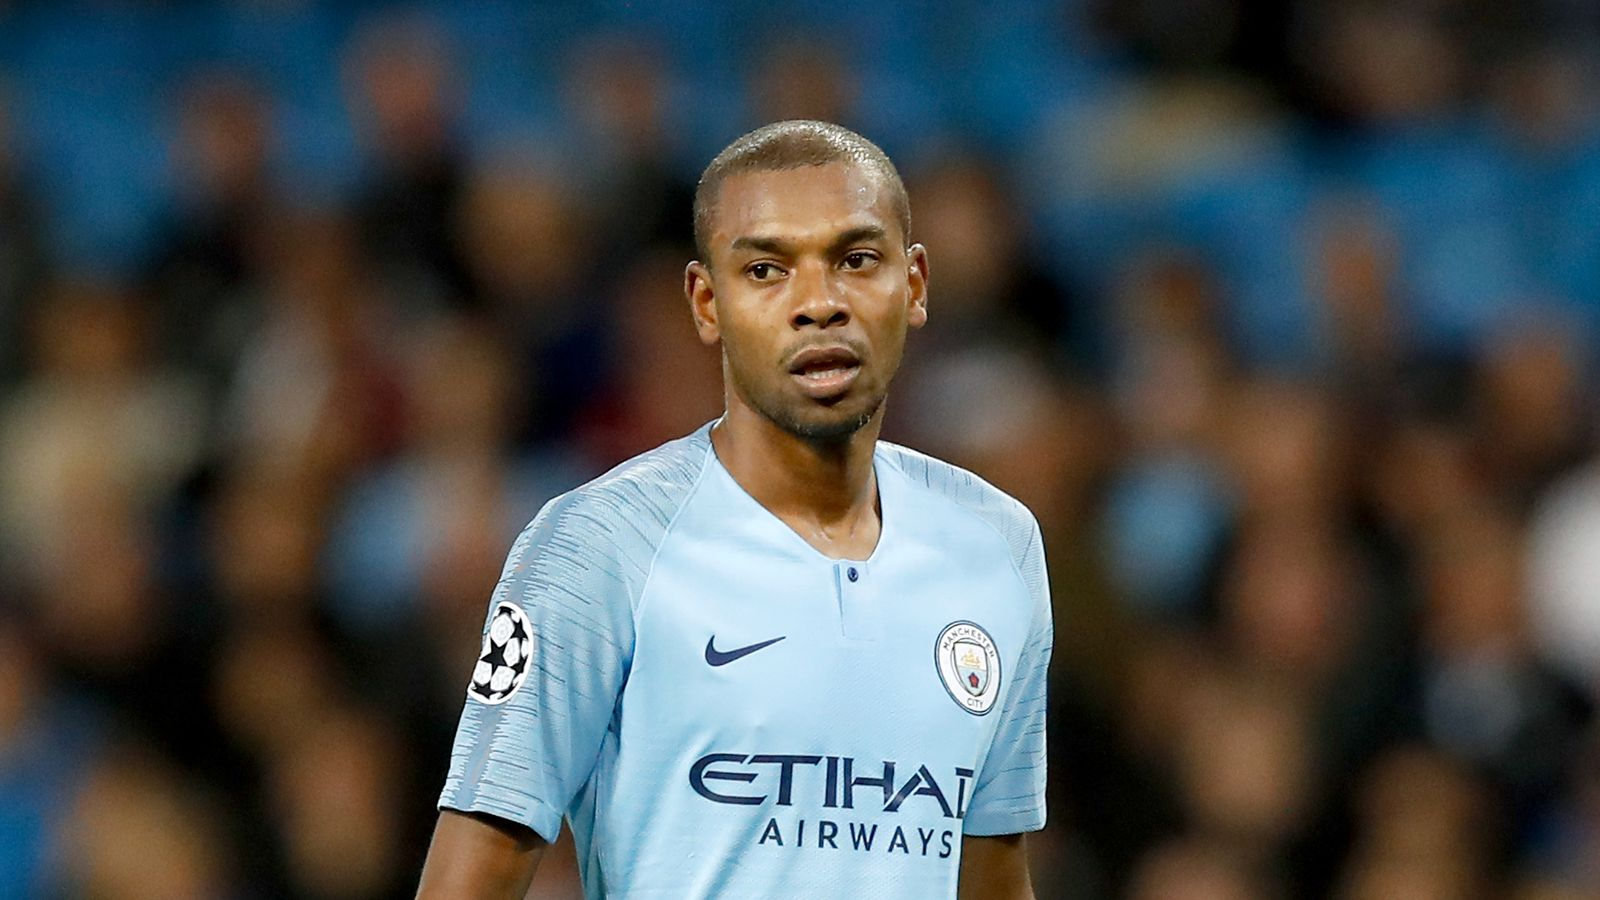 No Fernandinho back-up signing in January, says Pep